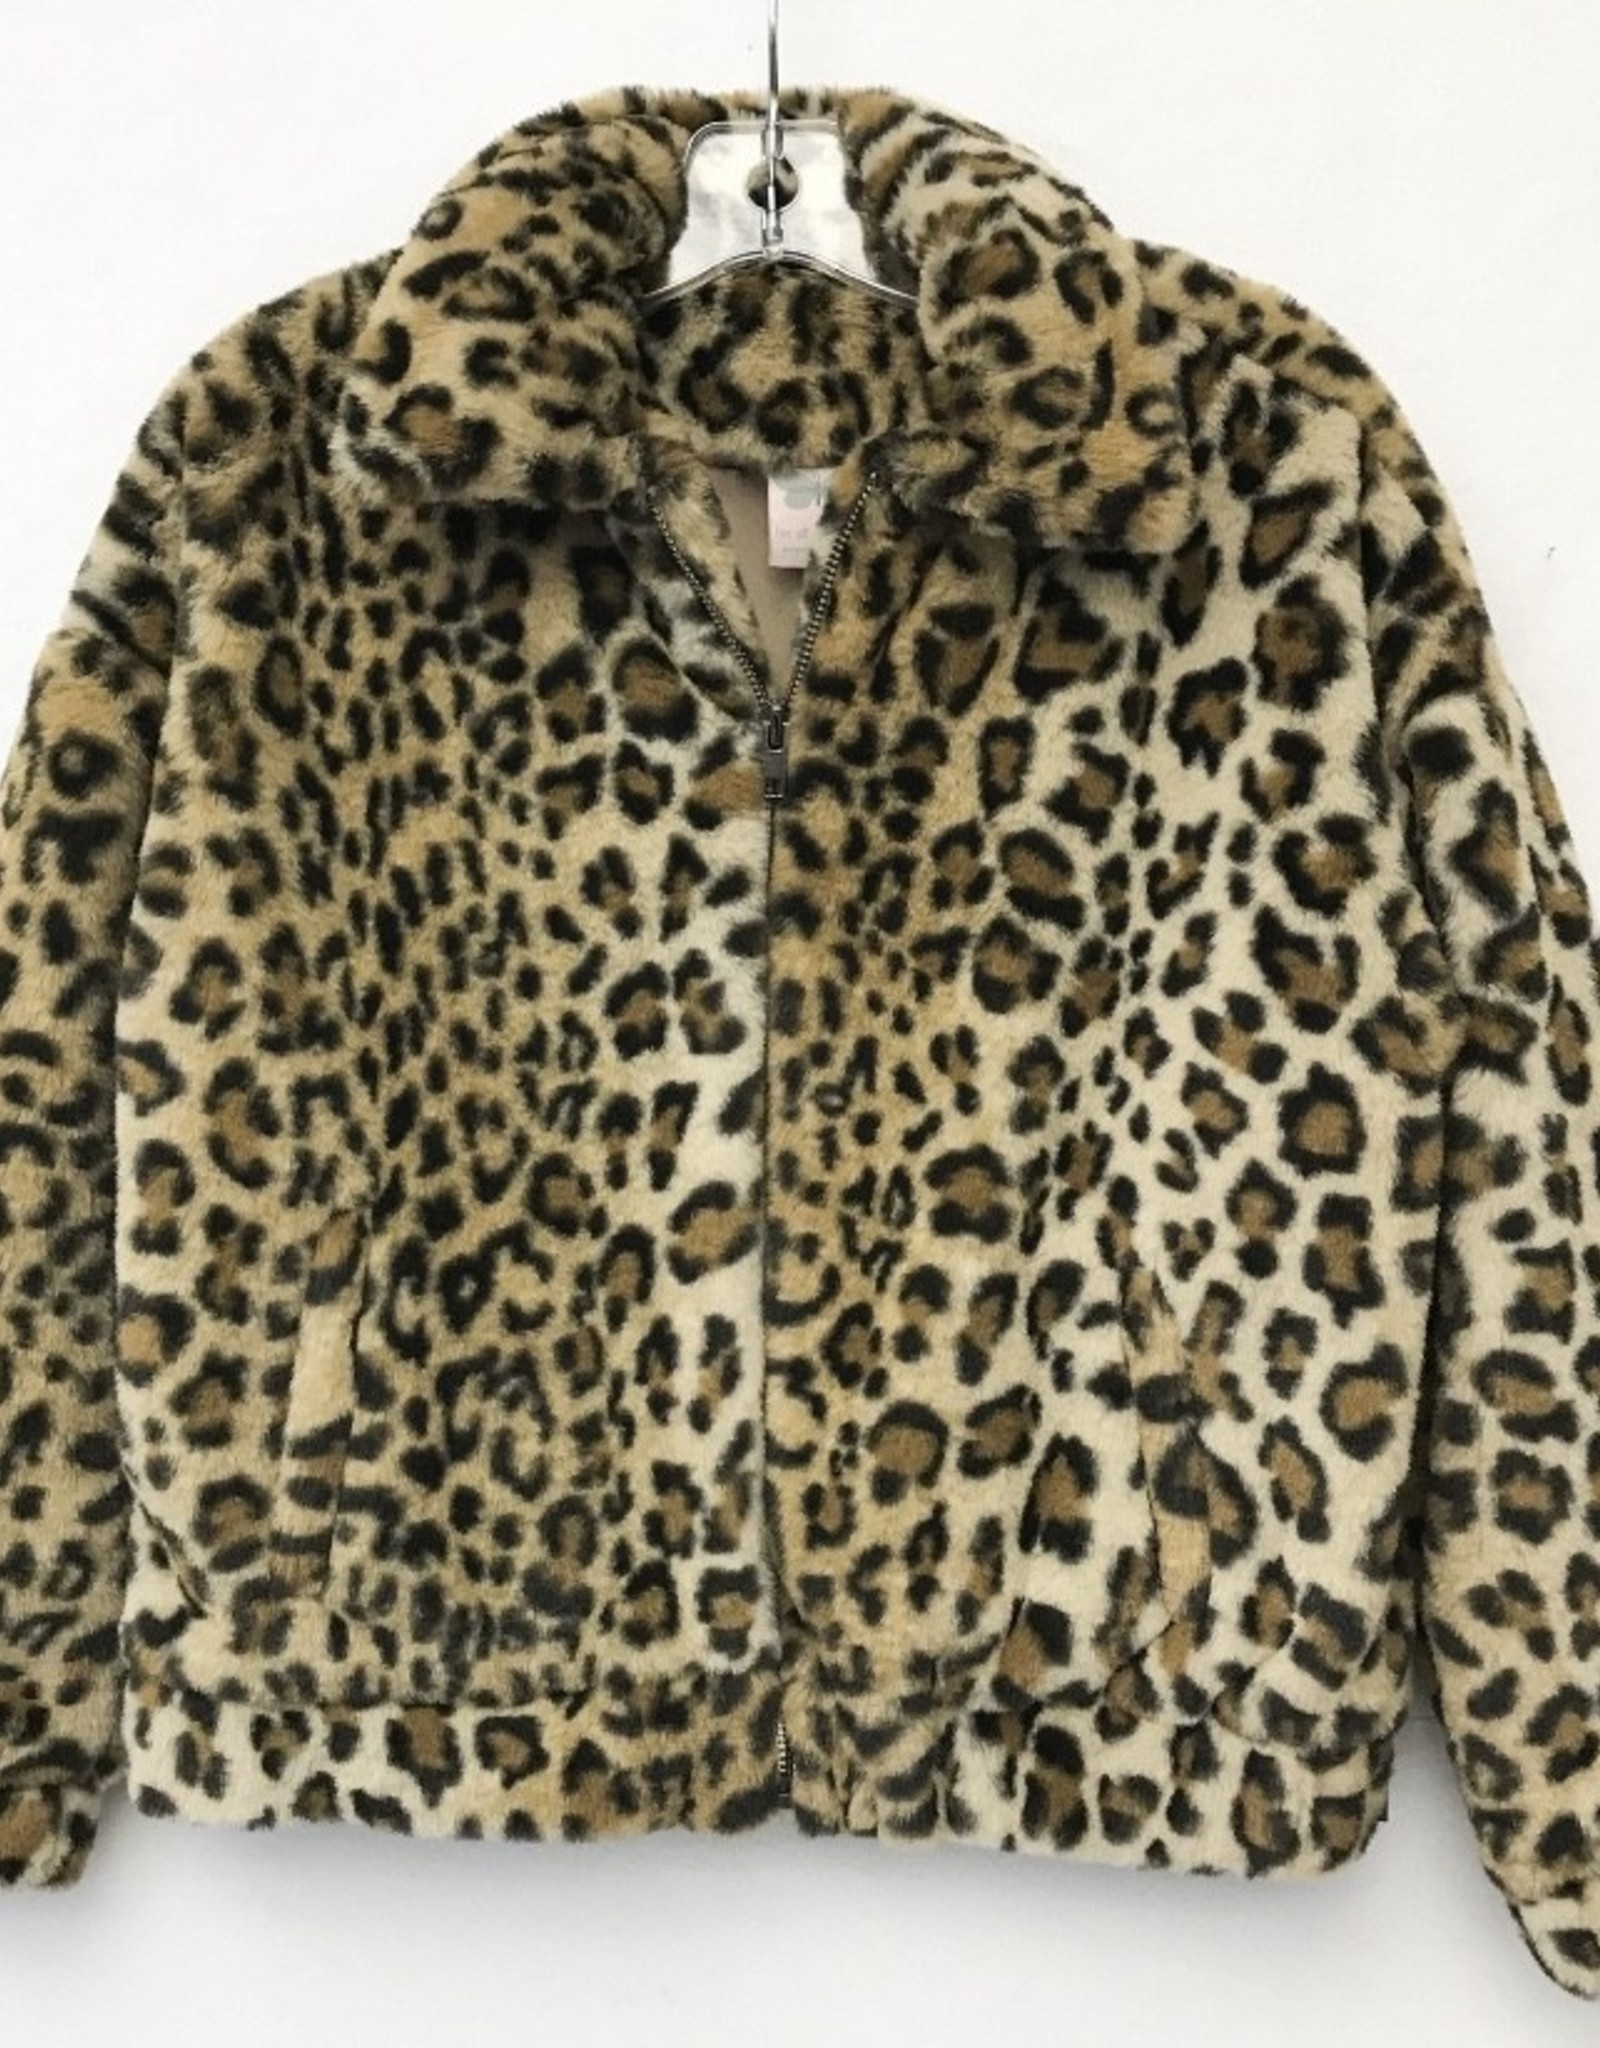 For All Seasons For All Seasons Leopard Jacket